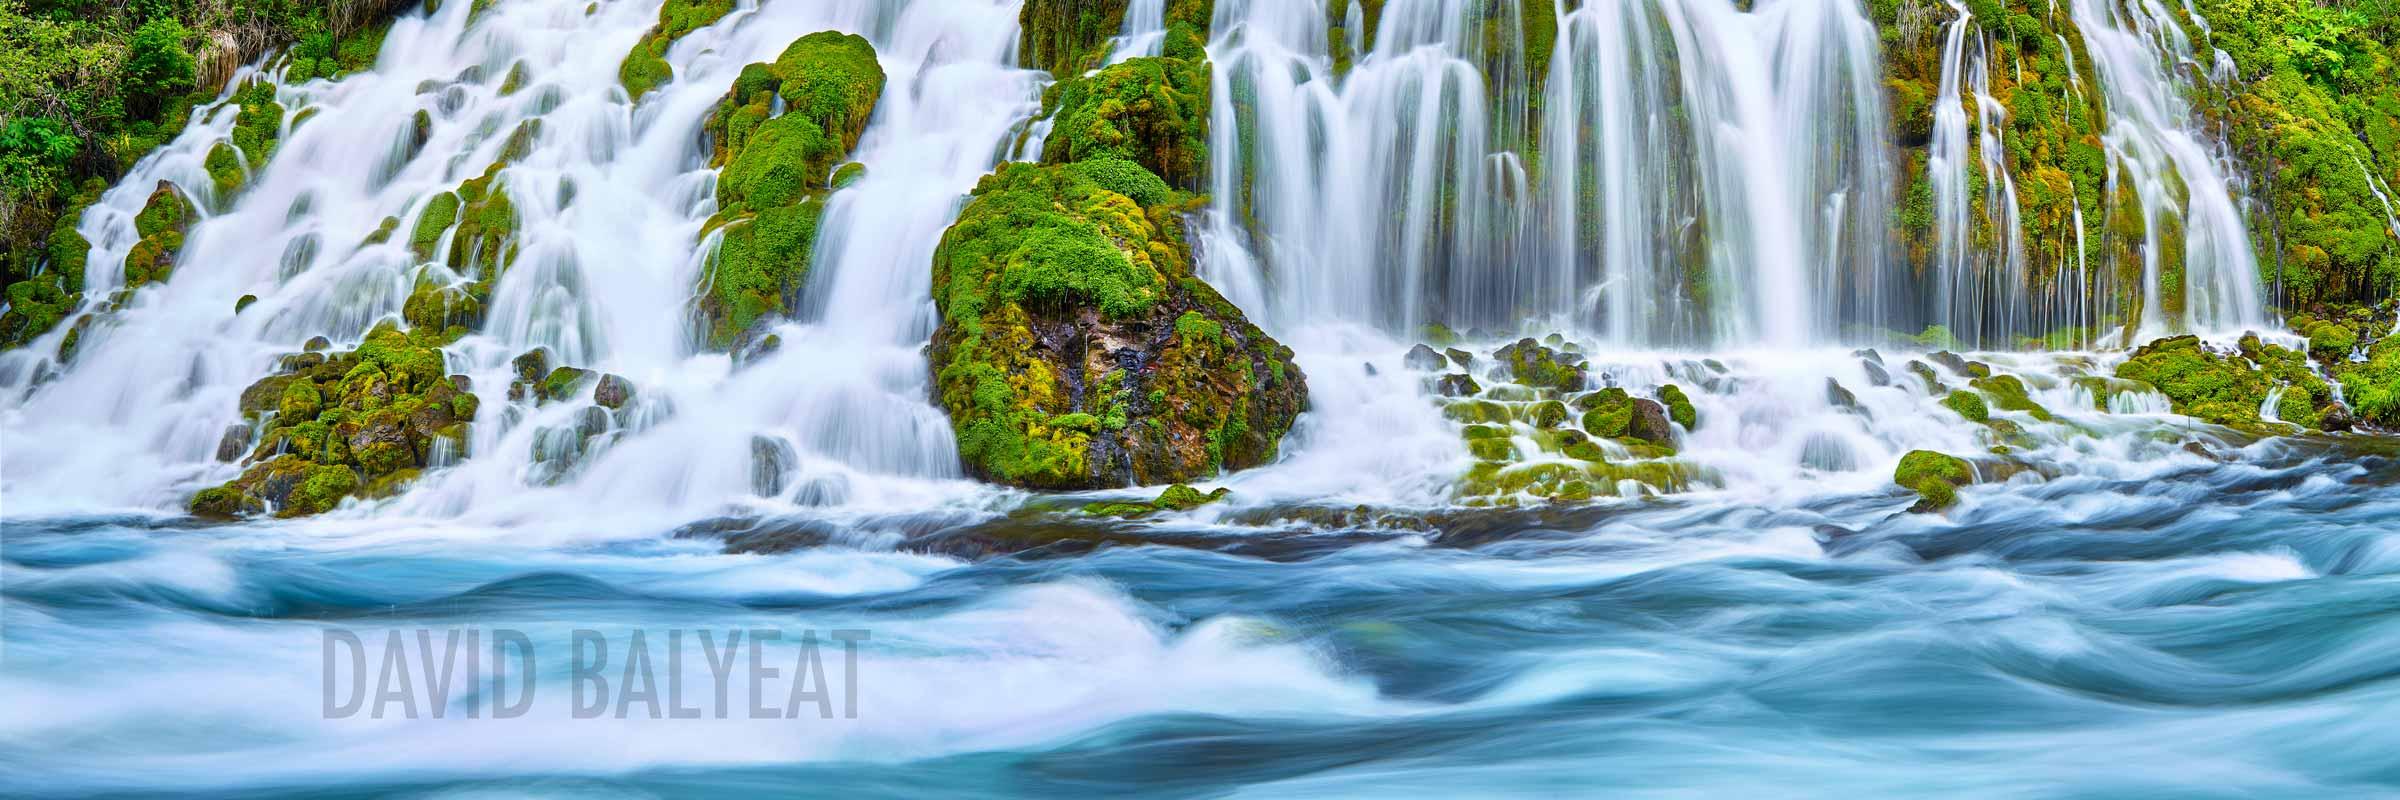 Norther California secret waterfalls living waters high-definition HD professional landscape photography